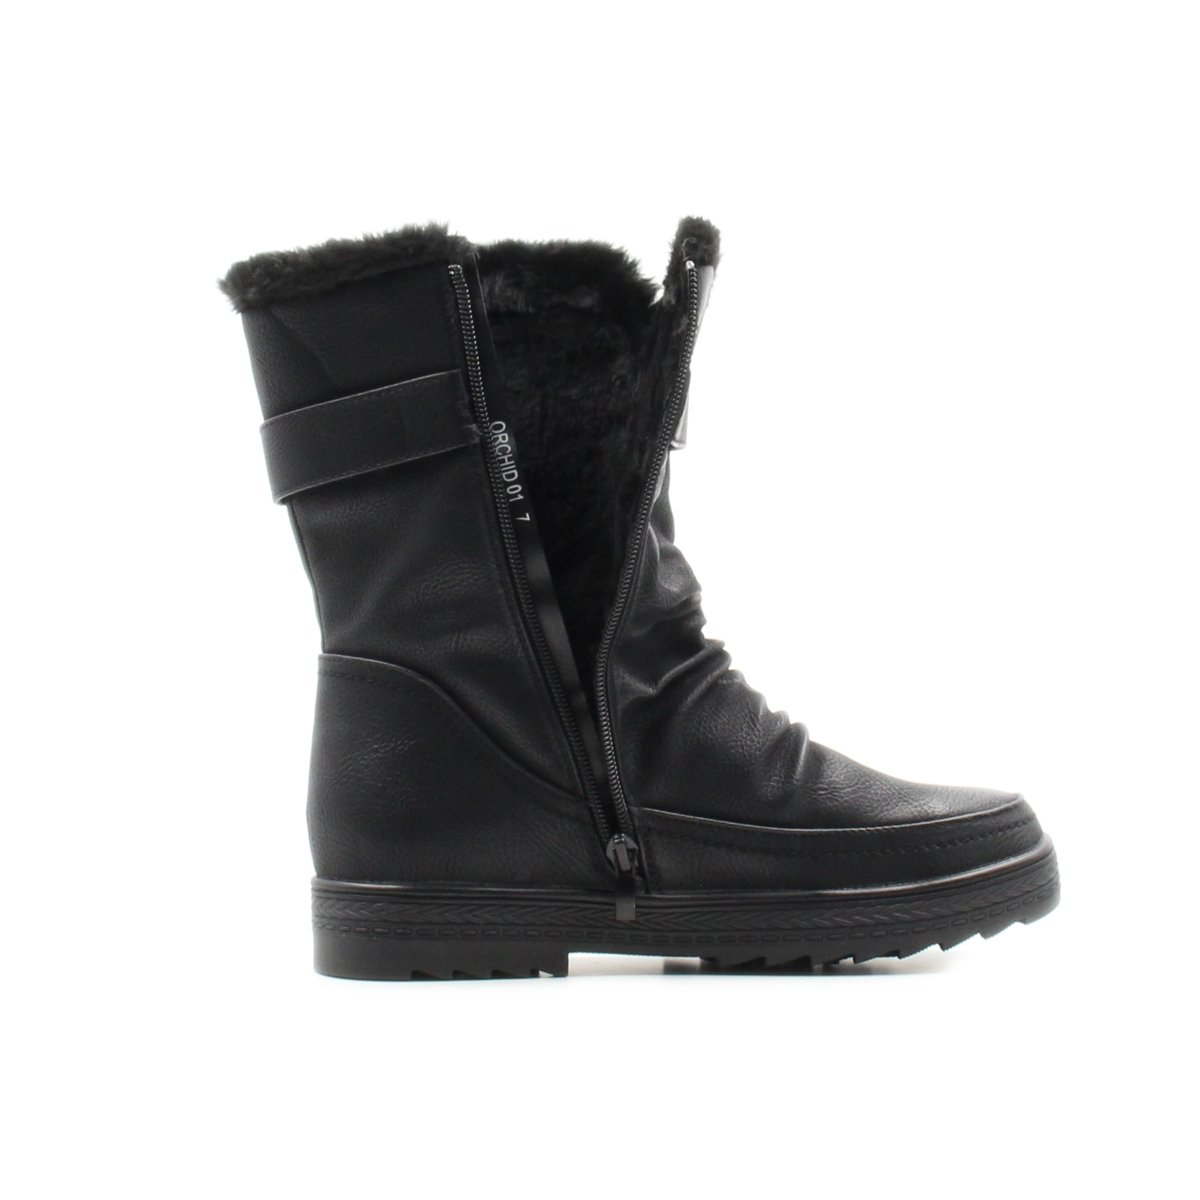 Stylish /& Comfort Womens Slouchy Mid-Calf Fur Lined Interior Winter Boots with Side Zipper Warm Shoes